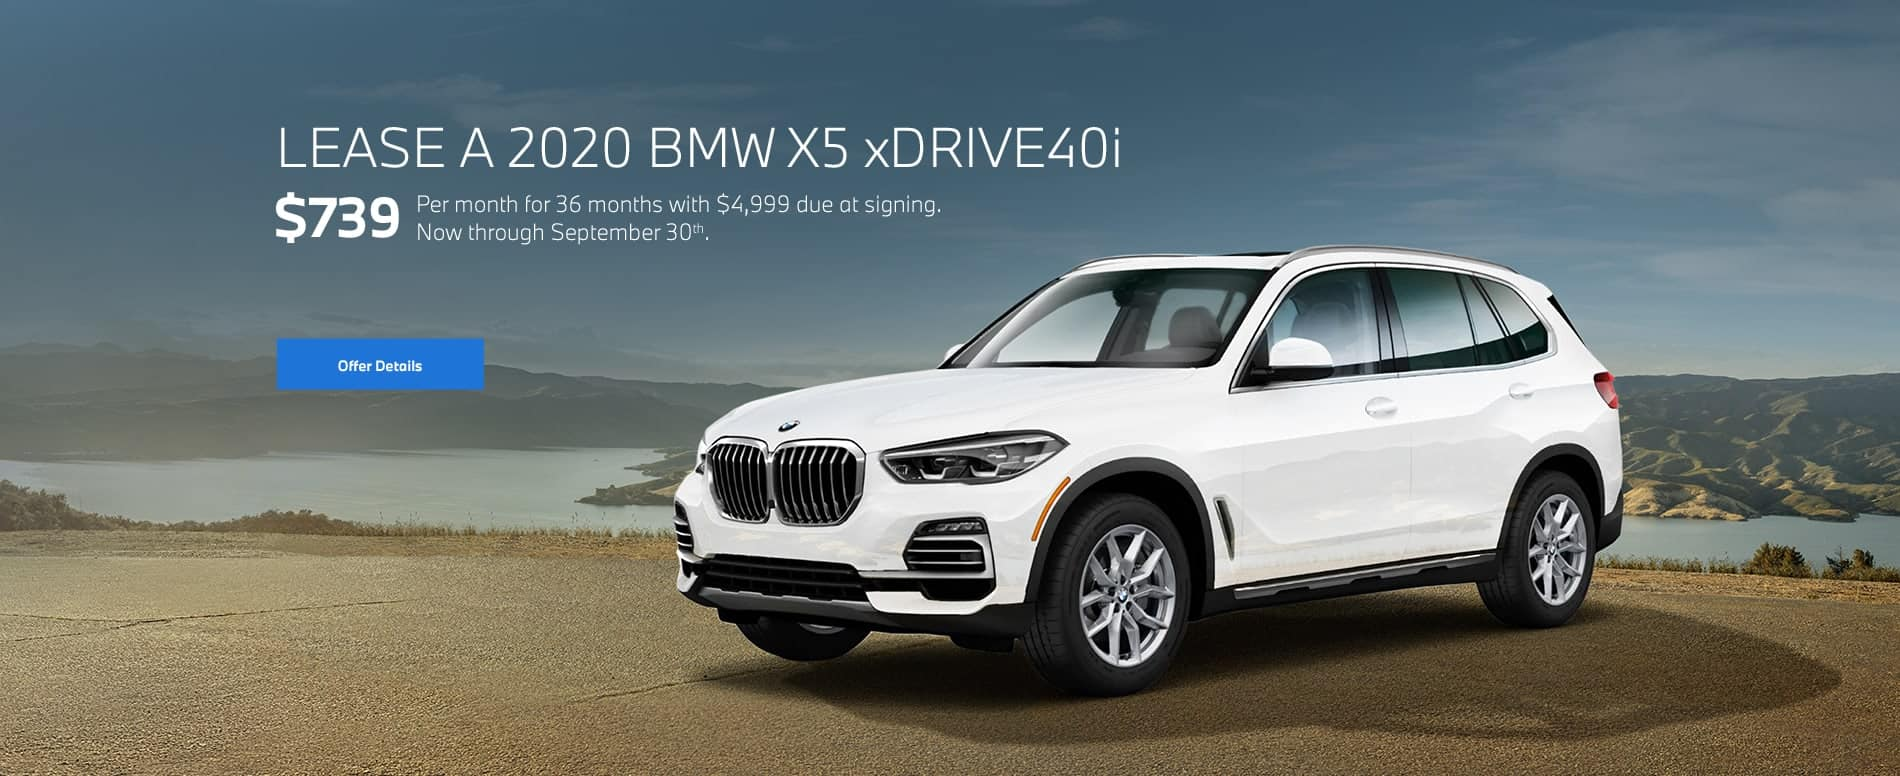 2020 BMW X5 xDrive40i for $739/mo